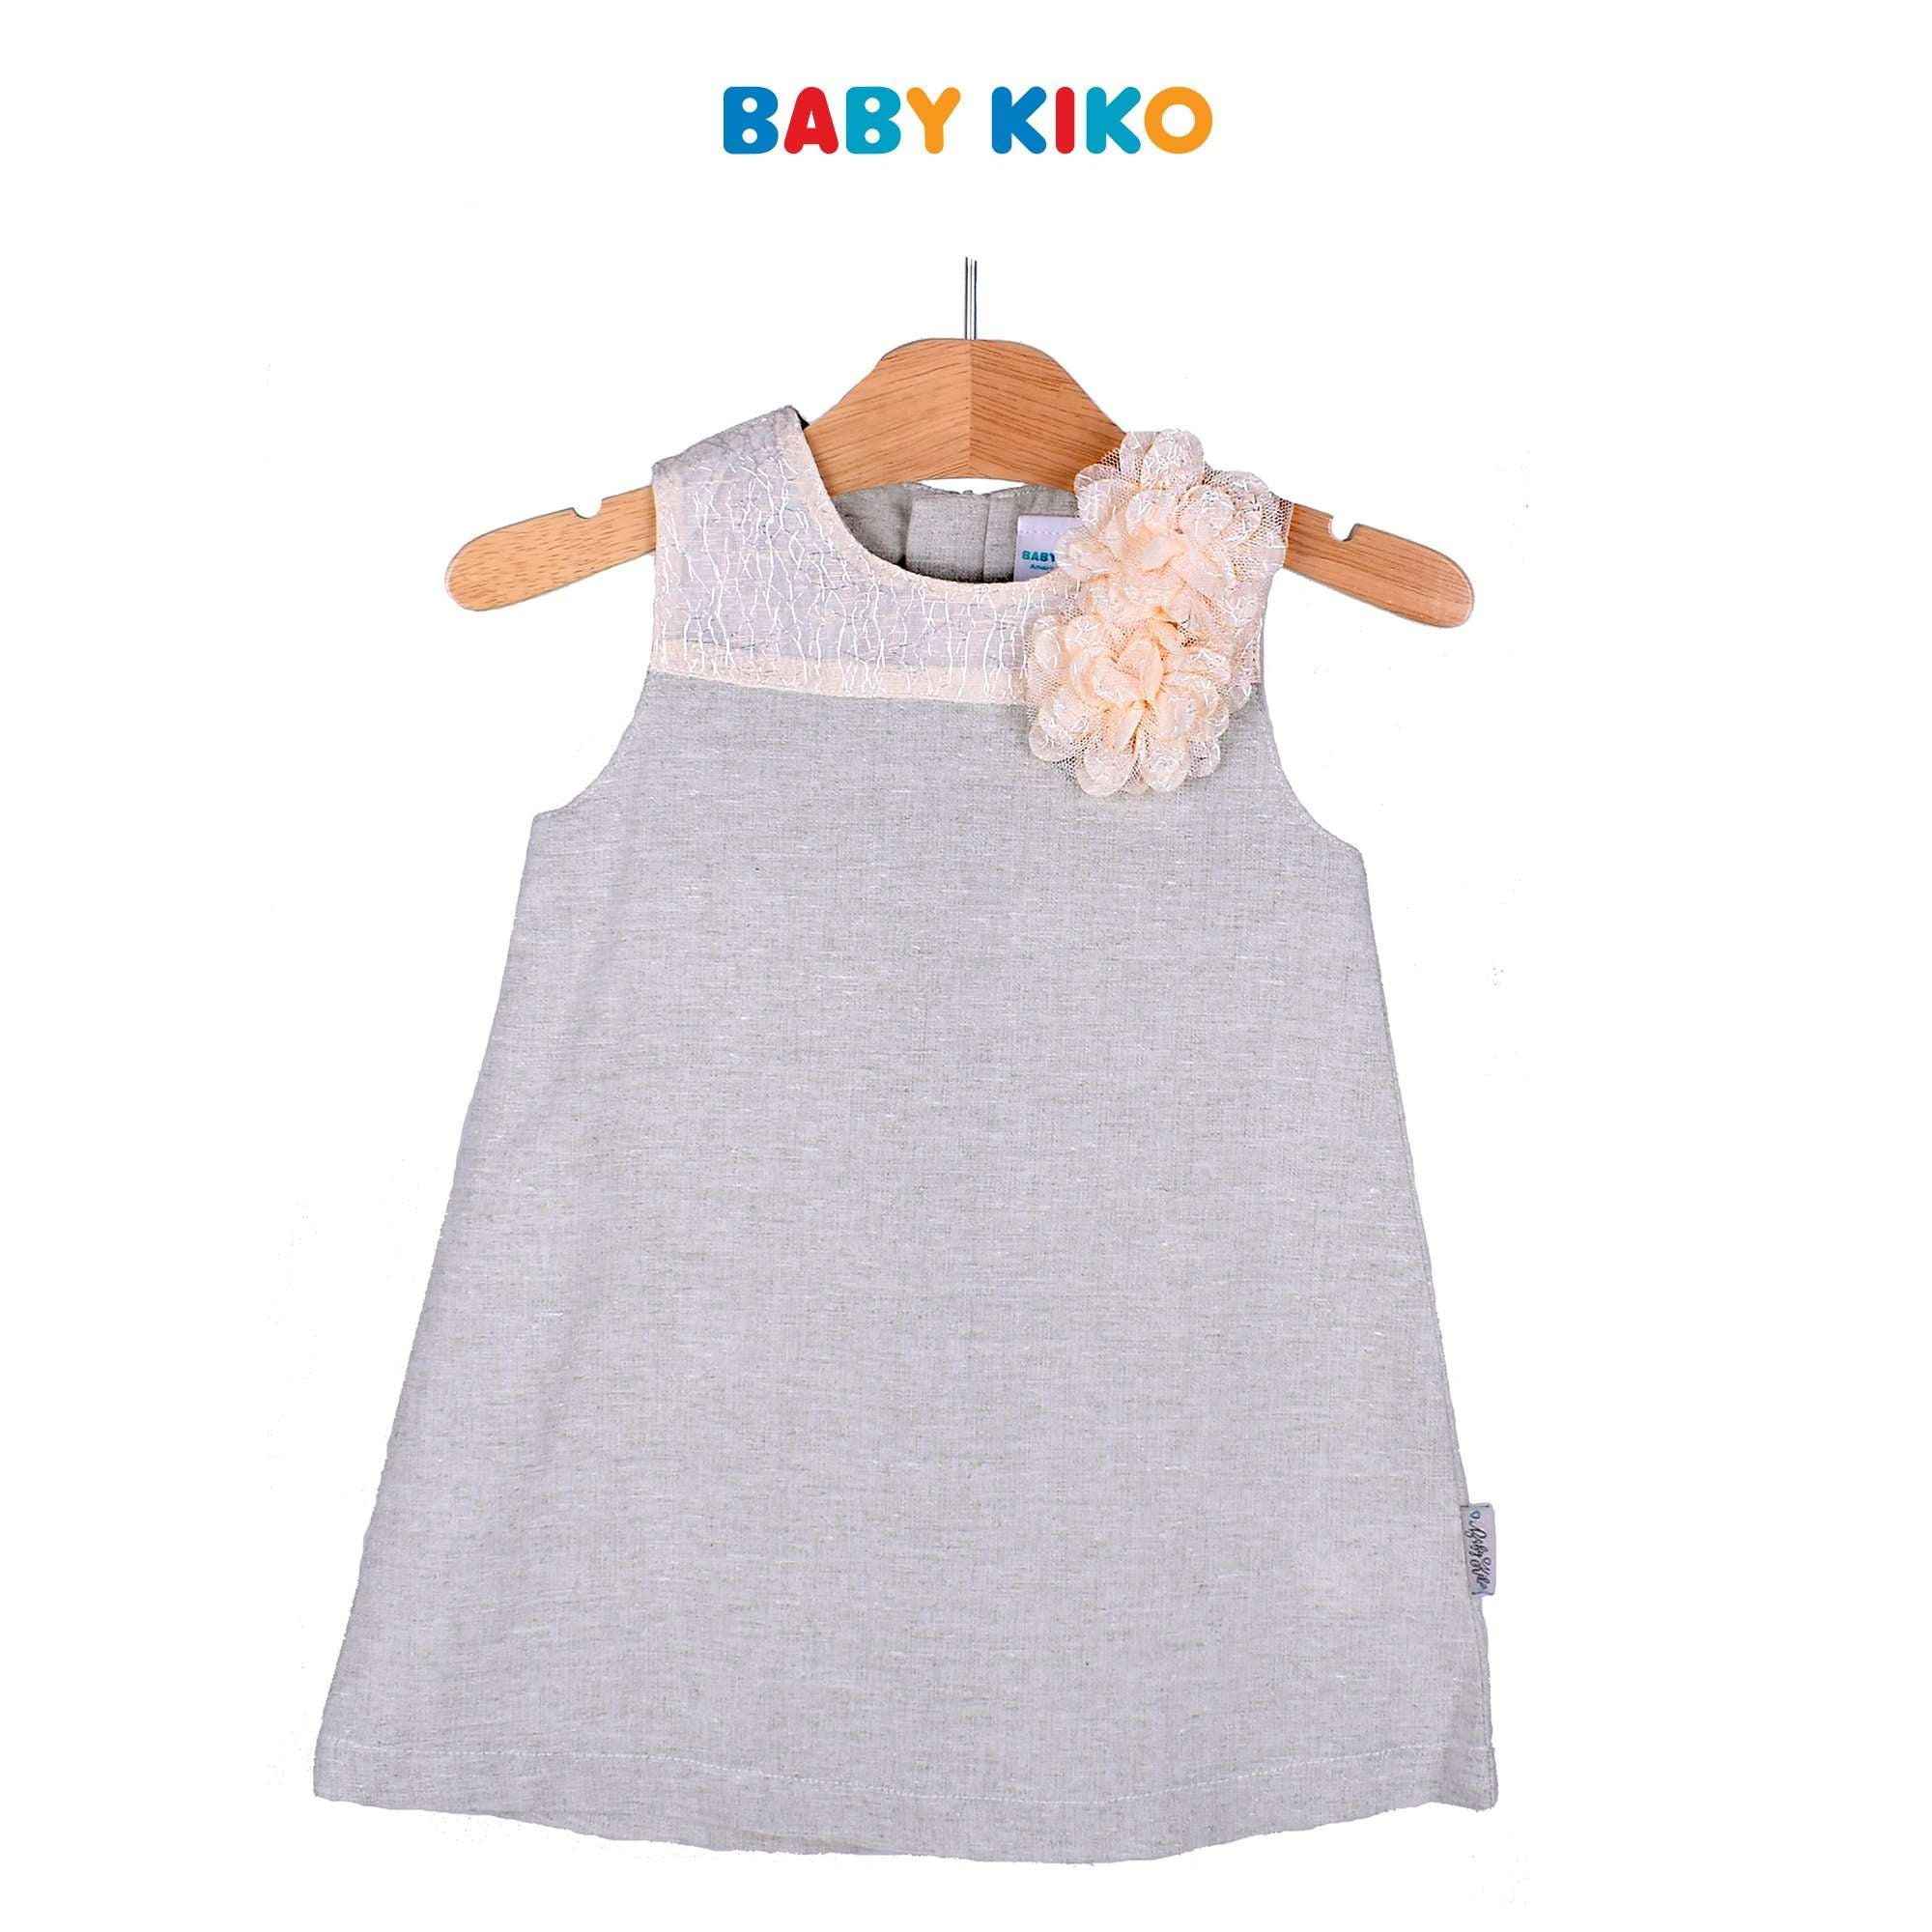 Baby KIKO Toddler Girl Sleeveless Dress - Beige 315140-311 : Buy Baby KIKO online at CMG.MY